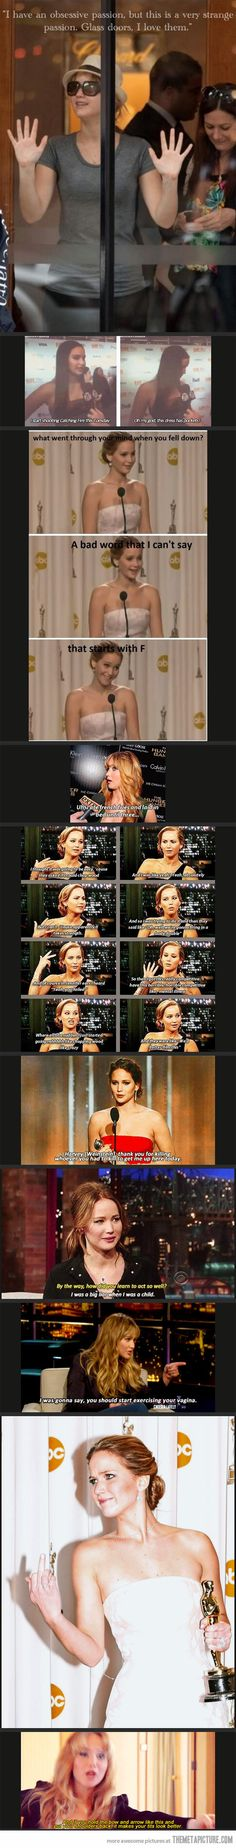 just some reasons i love jennifer lawrence